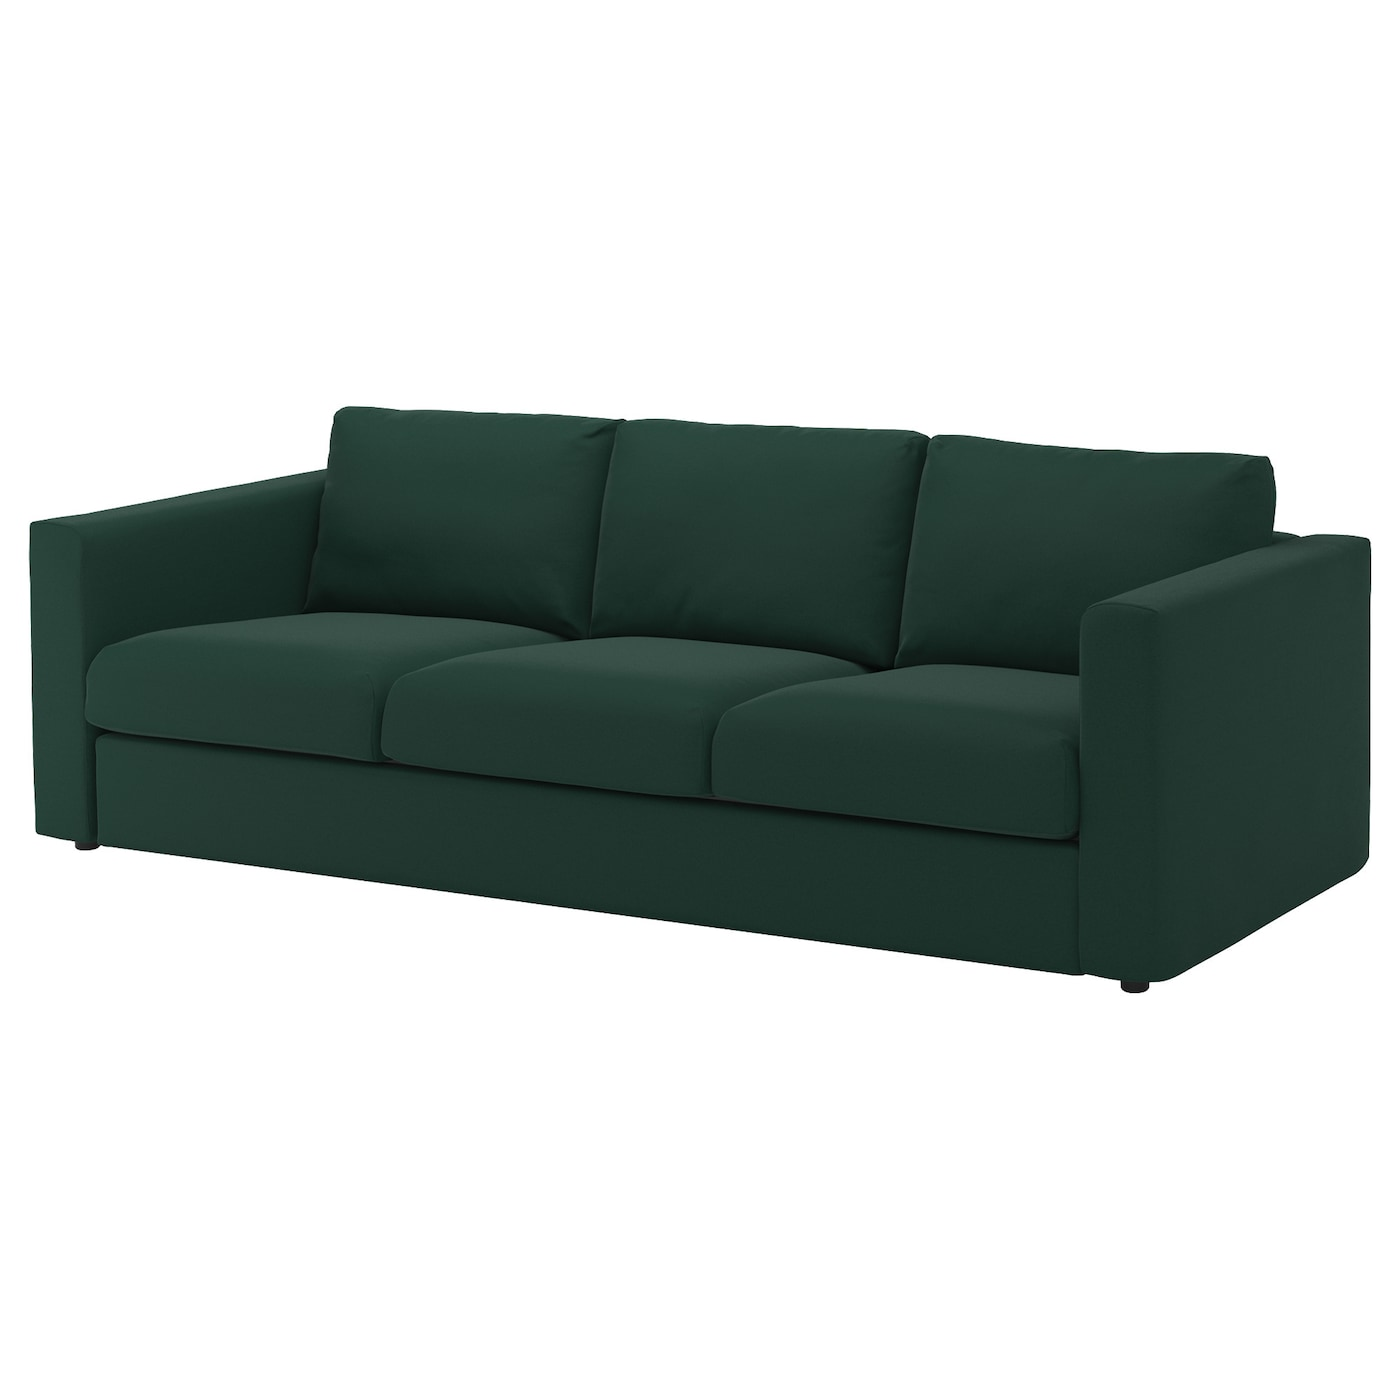 vimle canap 3 places gunnared vert fonc ikea. Black Bedroom Furniture Sets. Home Design Ideas